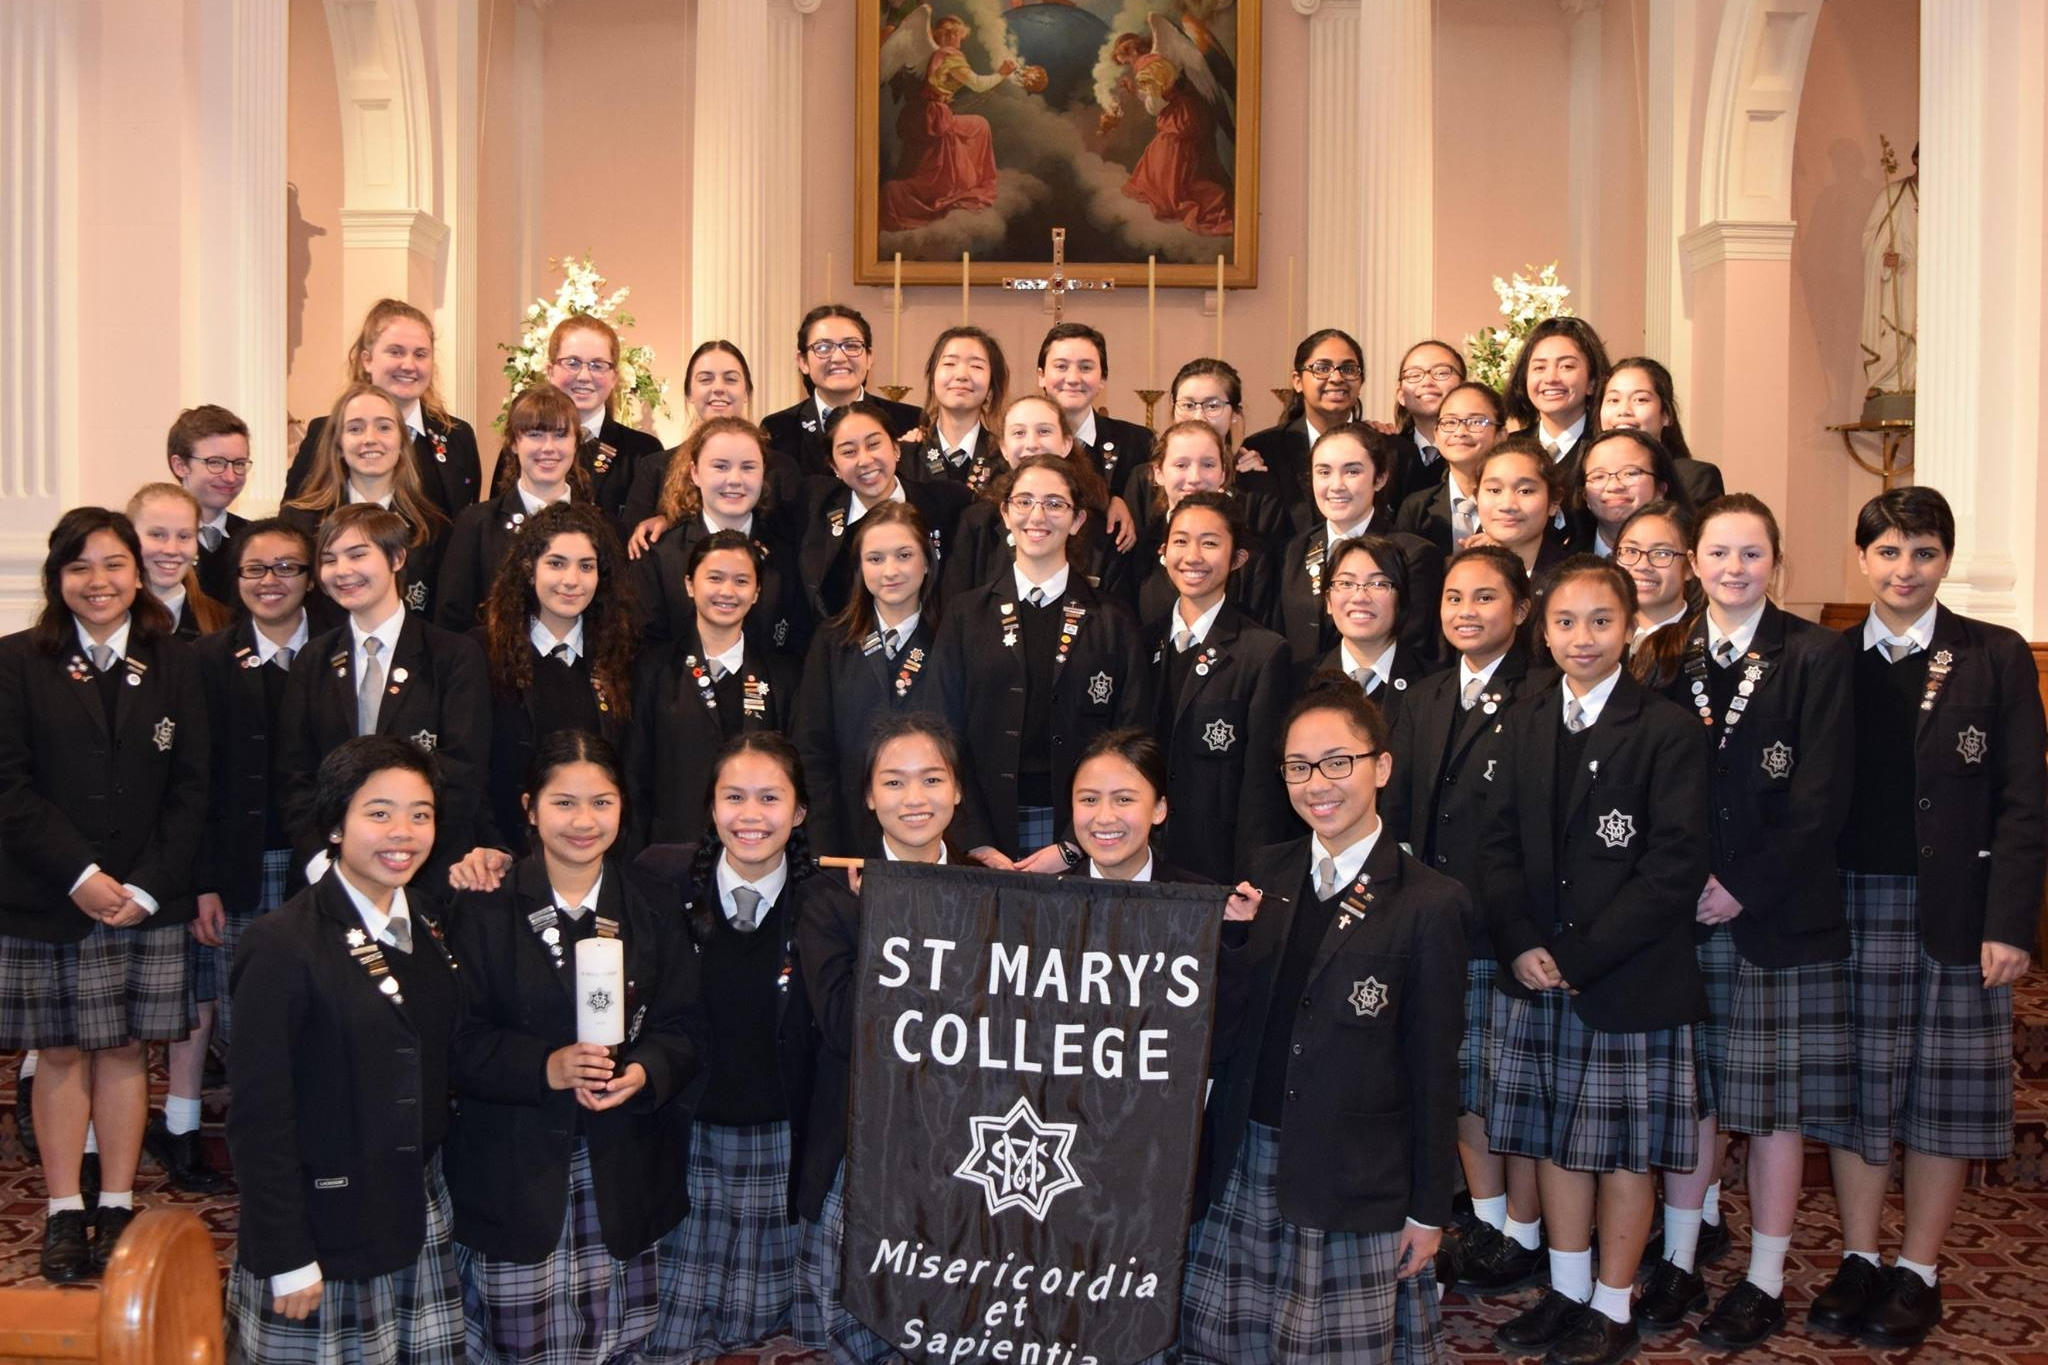 Young Vinnies - St Mary's College